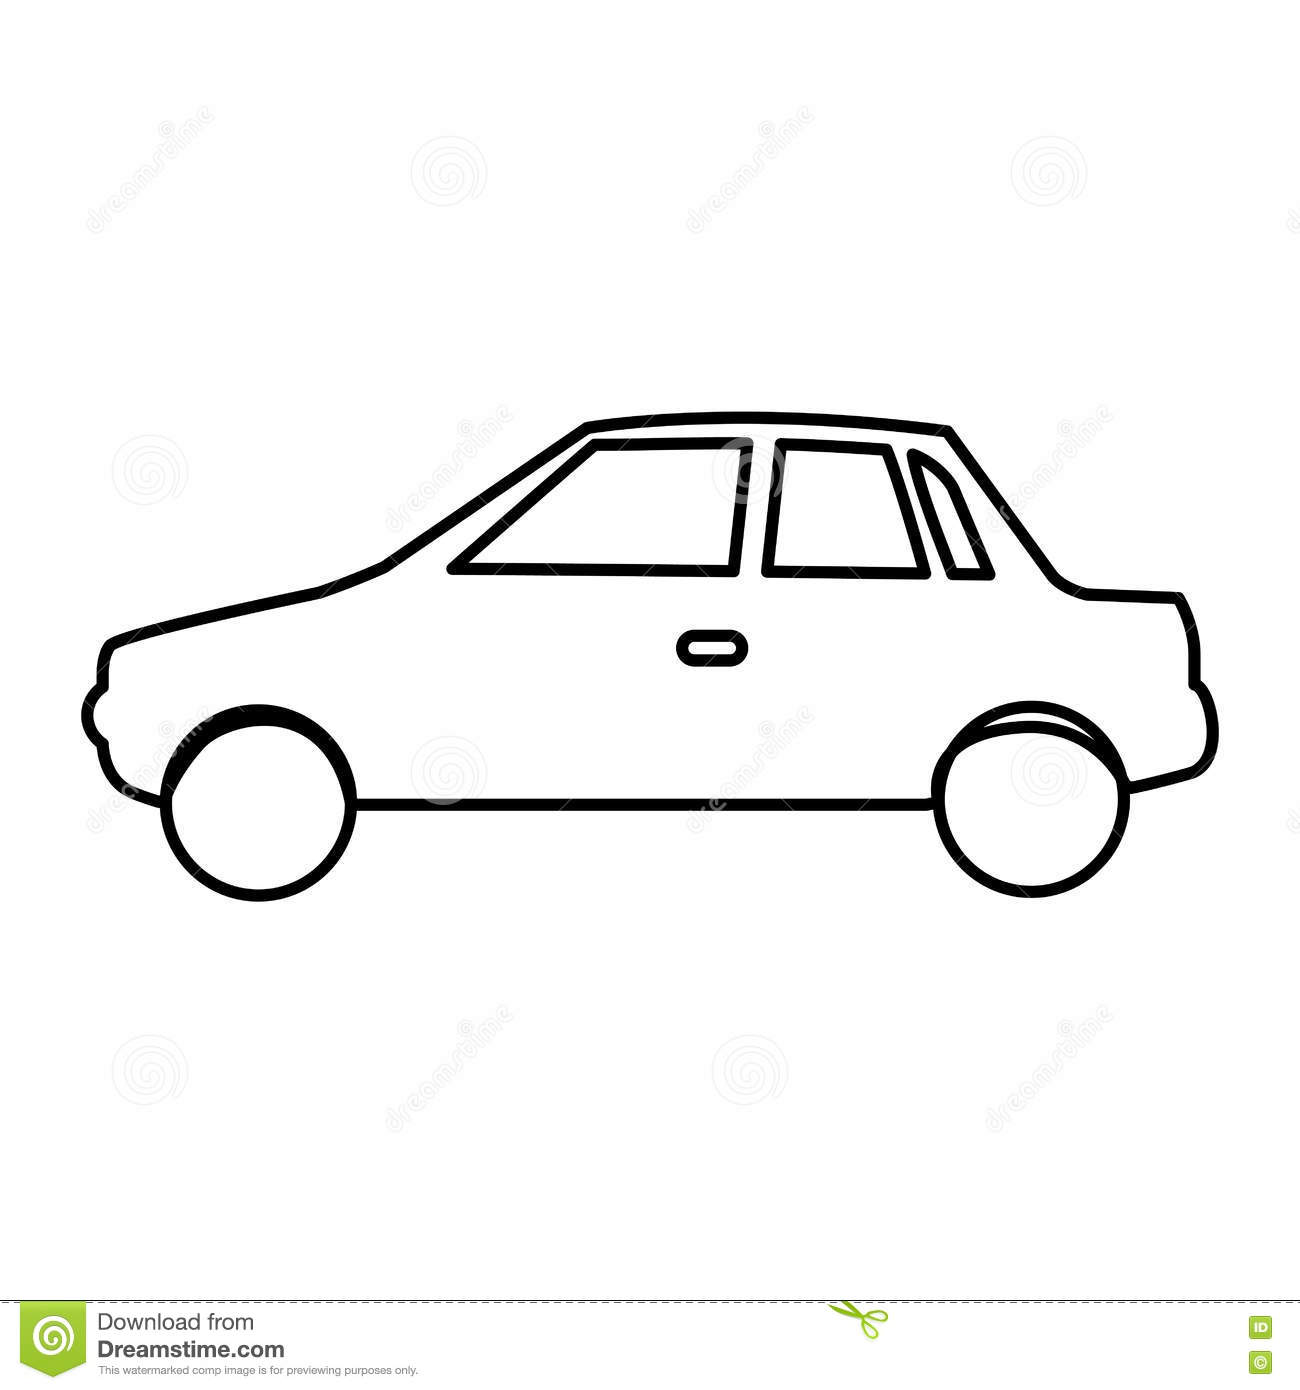 Simple Car Pictogram Icon Image Stock Vector Illustration Of Icon